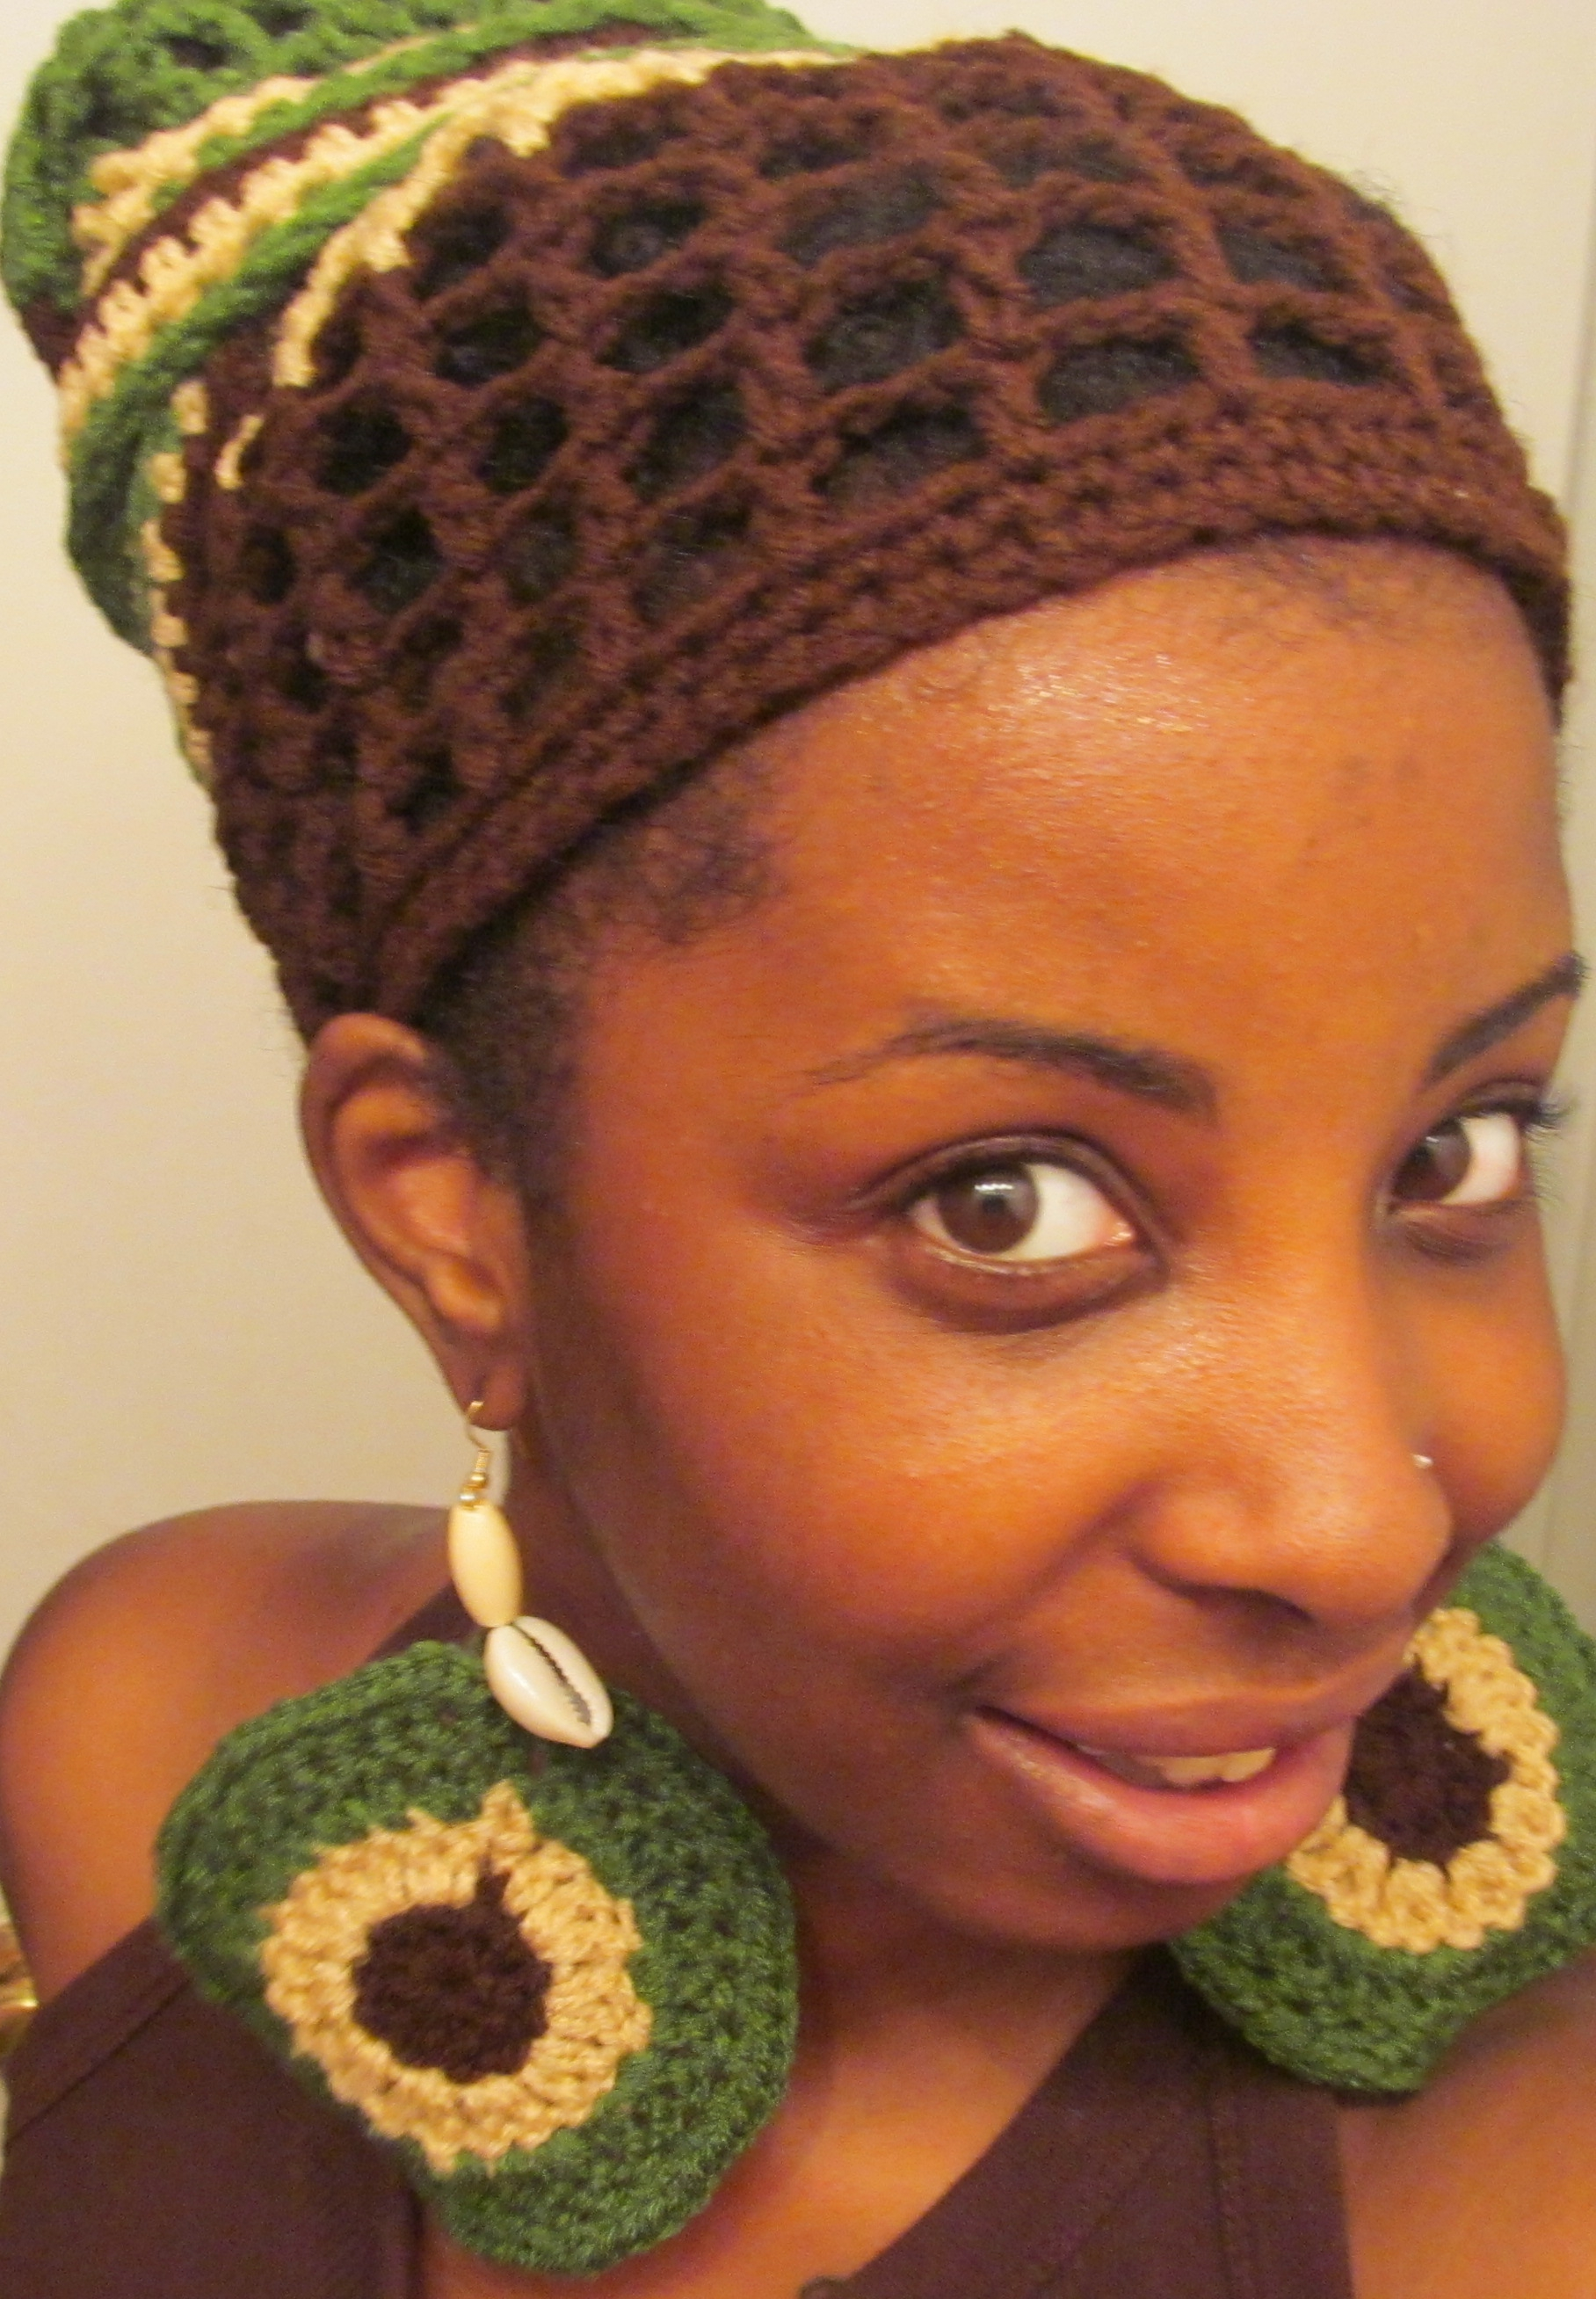 Crochet Hair Designs : The Dee-Vah Crochet Multi Hair-Wrap Pattern Jess Handmade Designs